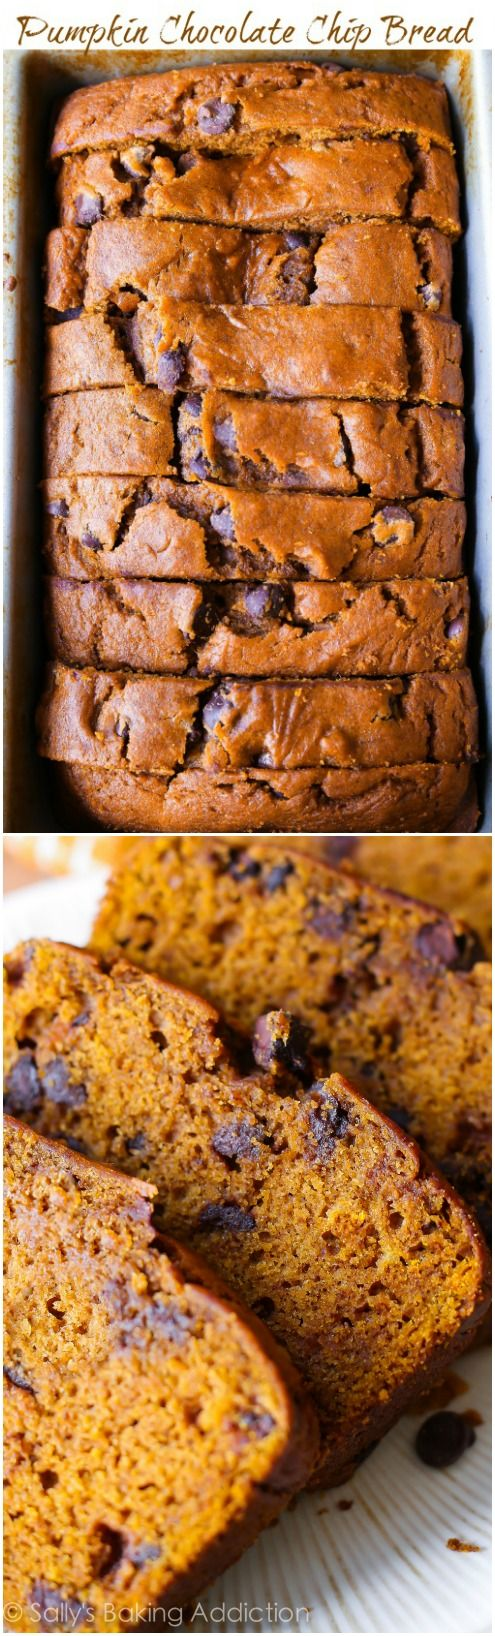 nike free 5 0 canada post This incredibly flavorful and moist pumpkin chocolate chip bread recipe is from my cookbook  Sally  39 s Baking Addiction cookbook  It  39 s always a huge hit  every ti